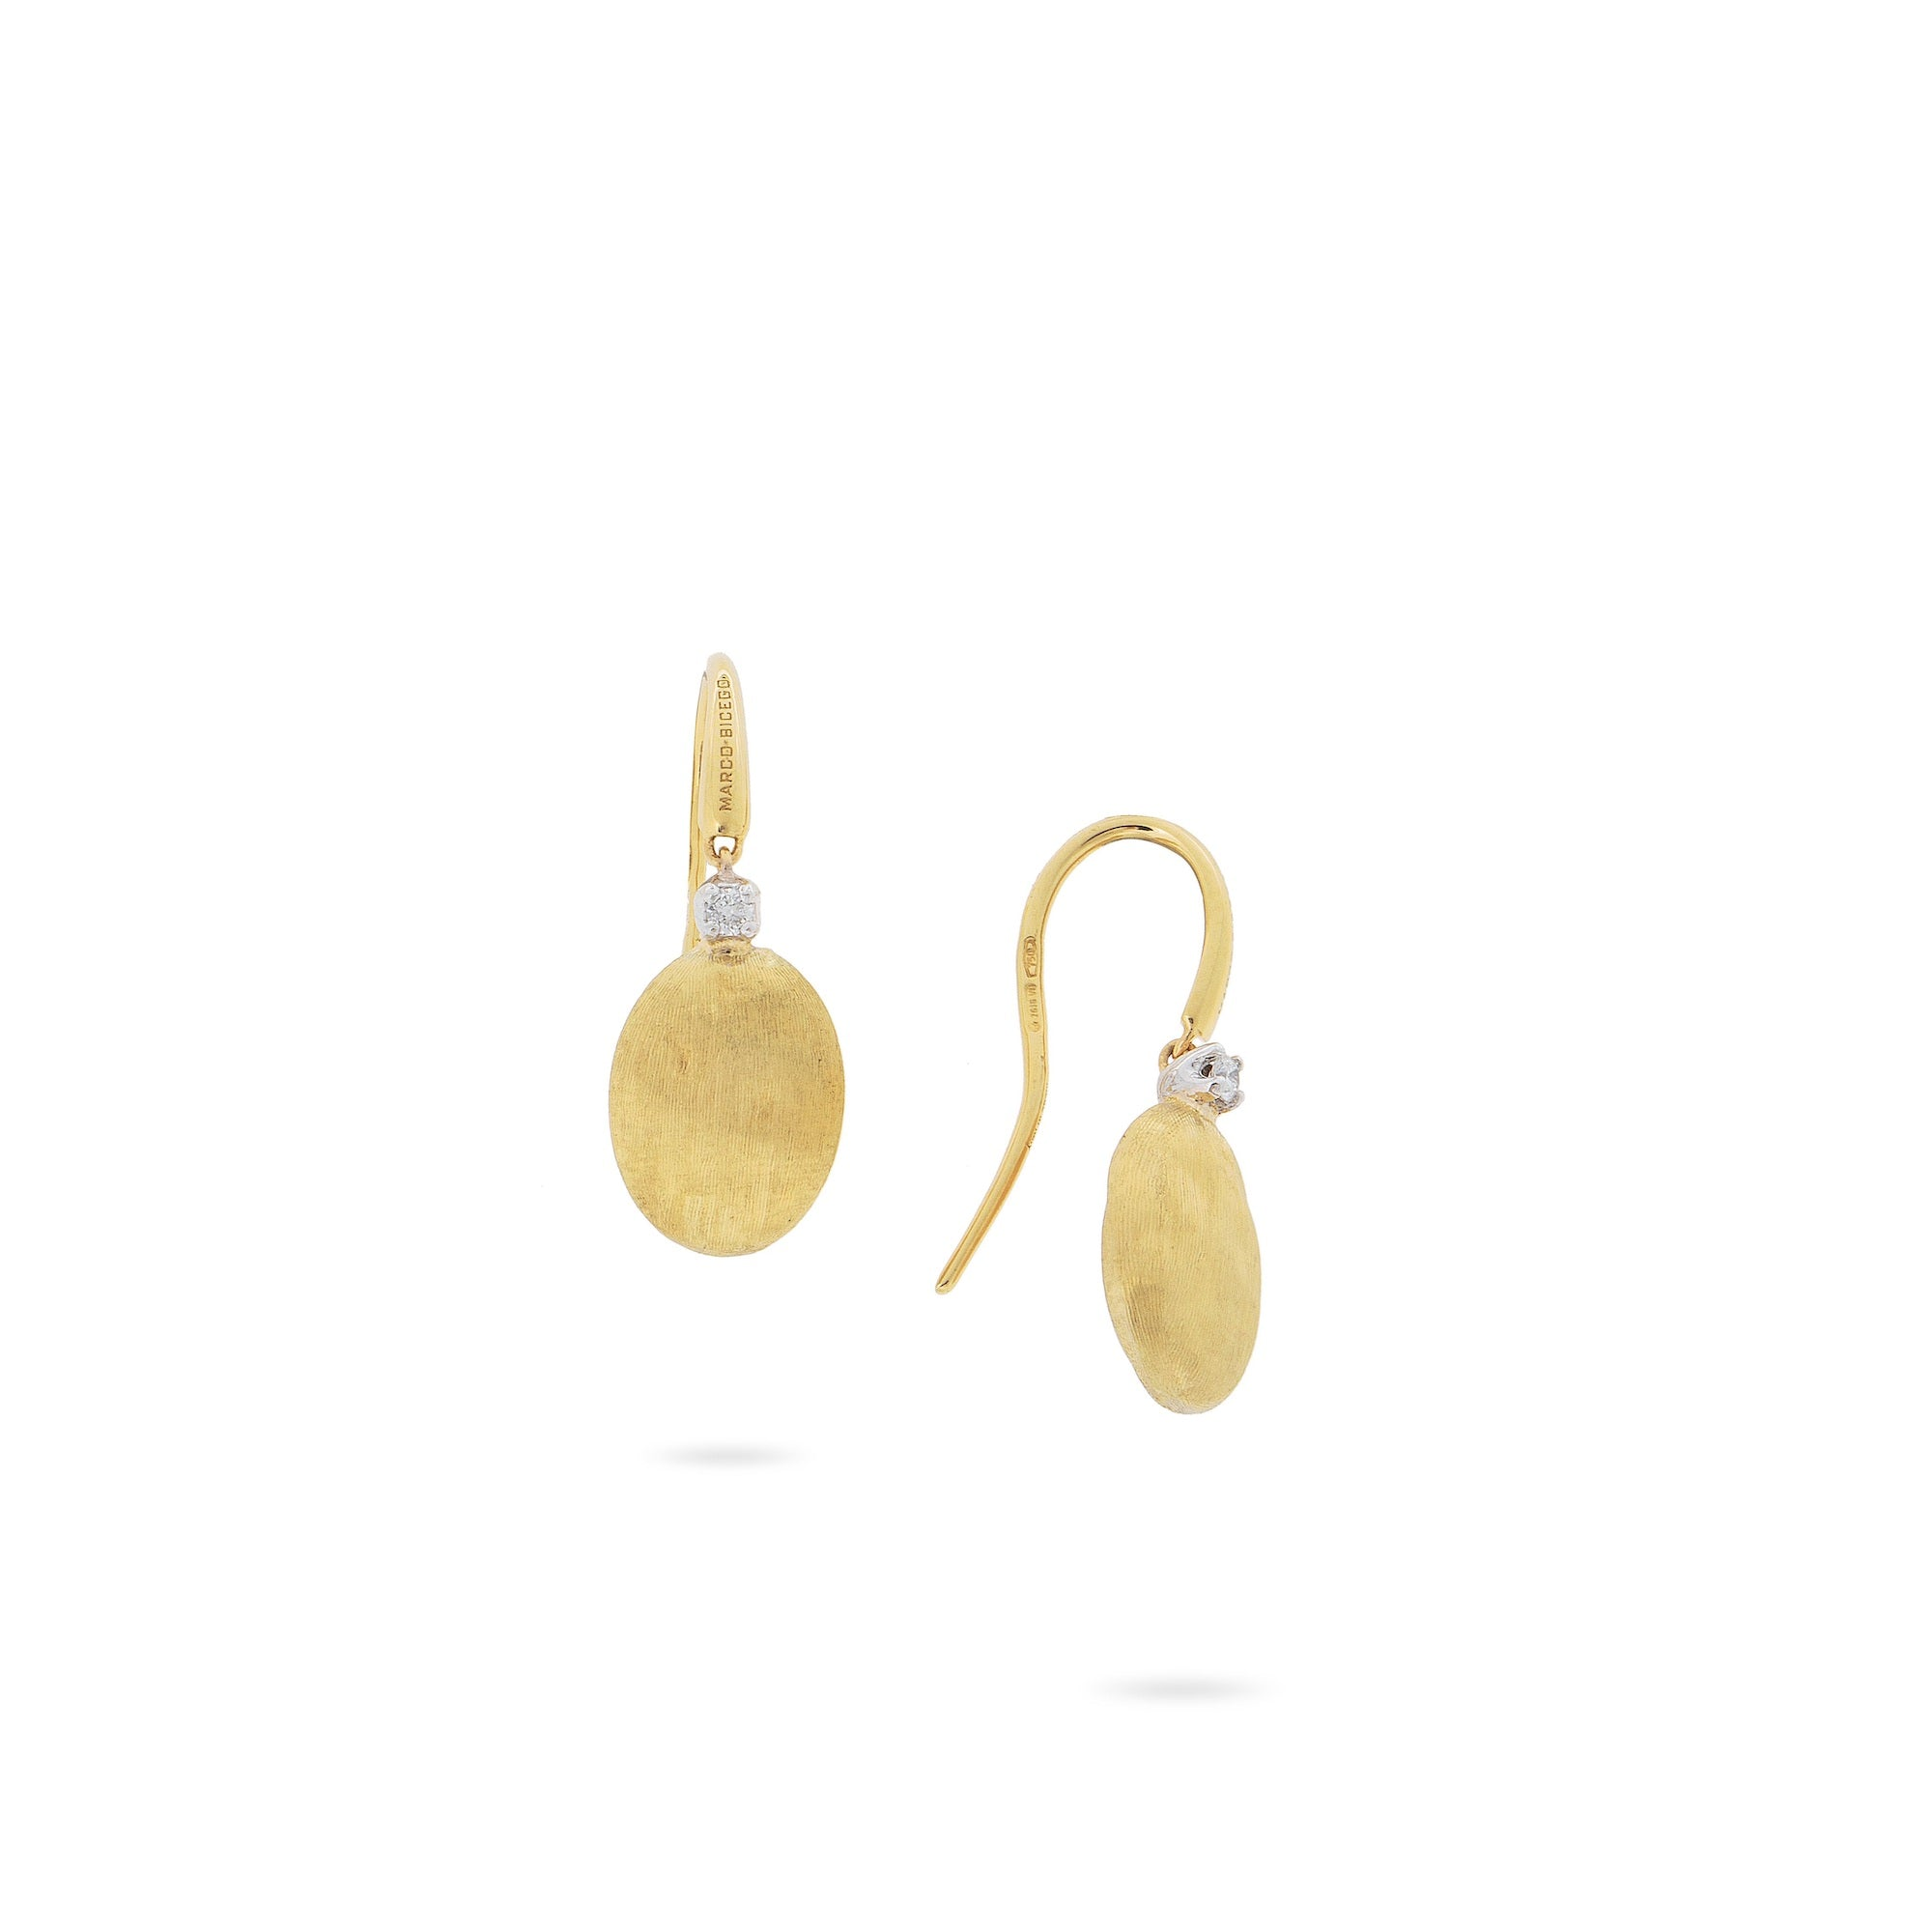 18K Yellow Gold & Diamond French Hook Earrings